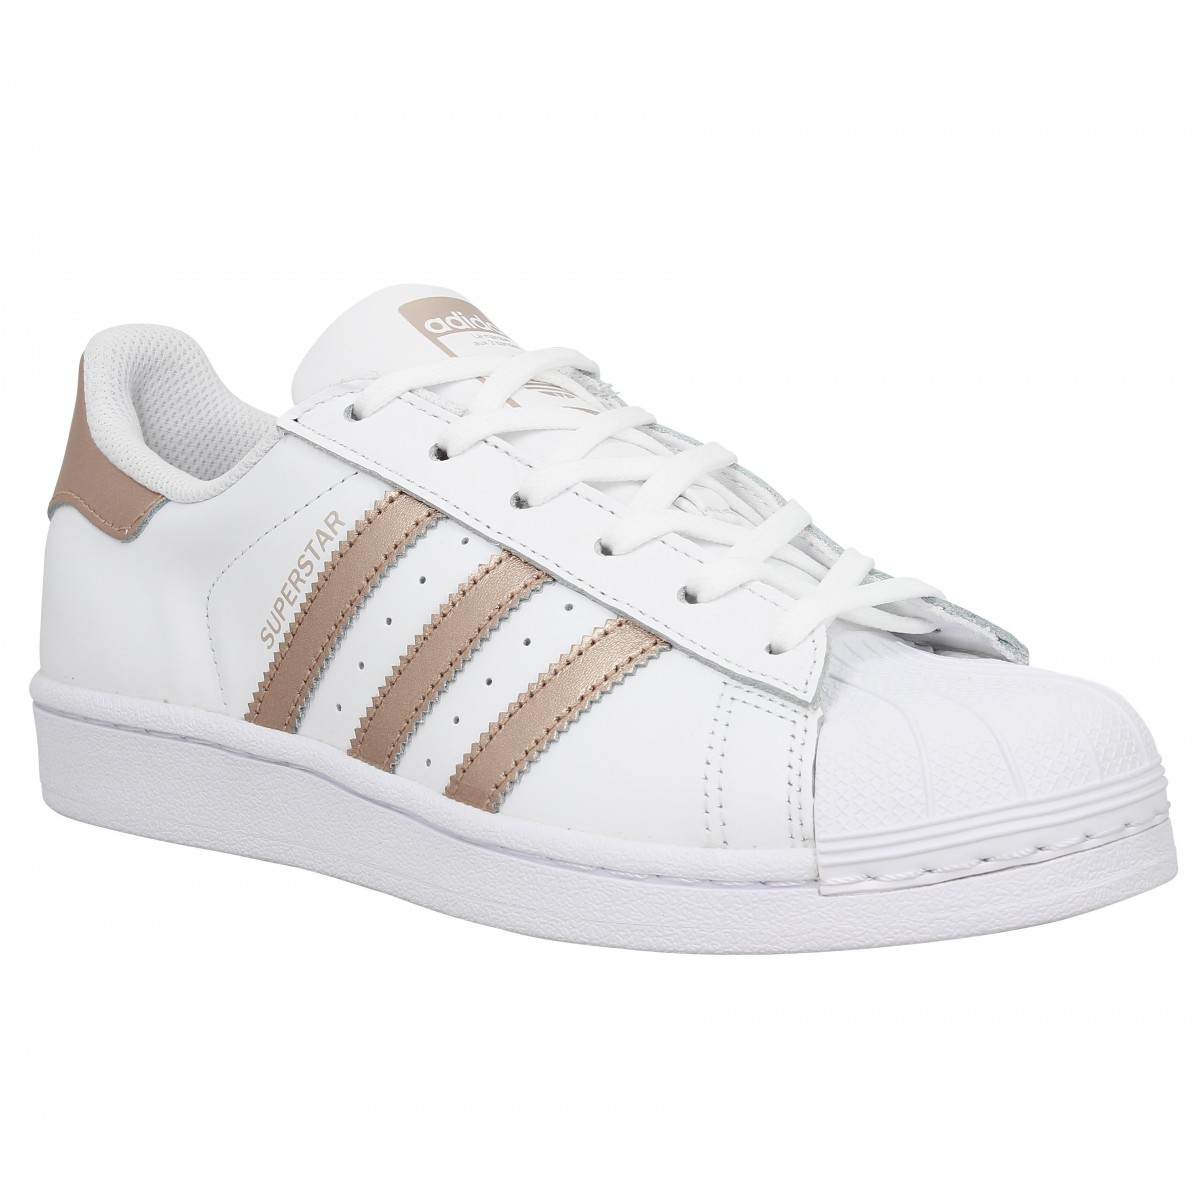 Superstar Femme Amazon Adidas Chaussure VGqpSUzM